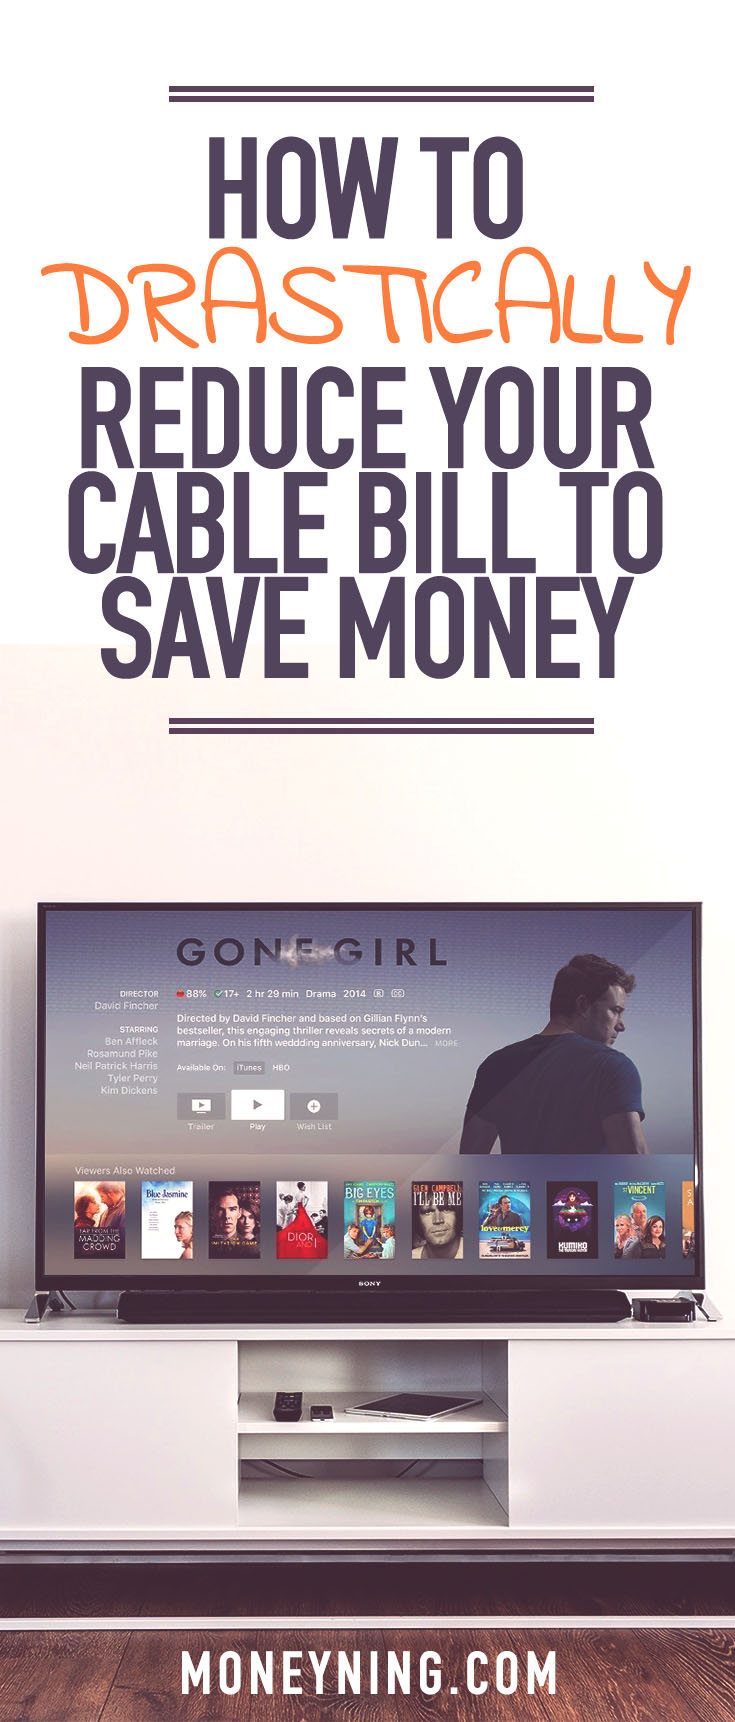 how to cut your cable bill